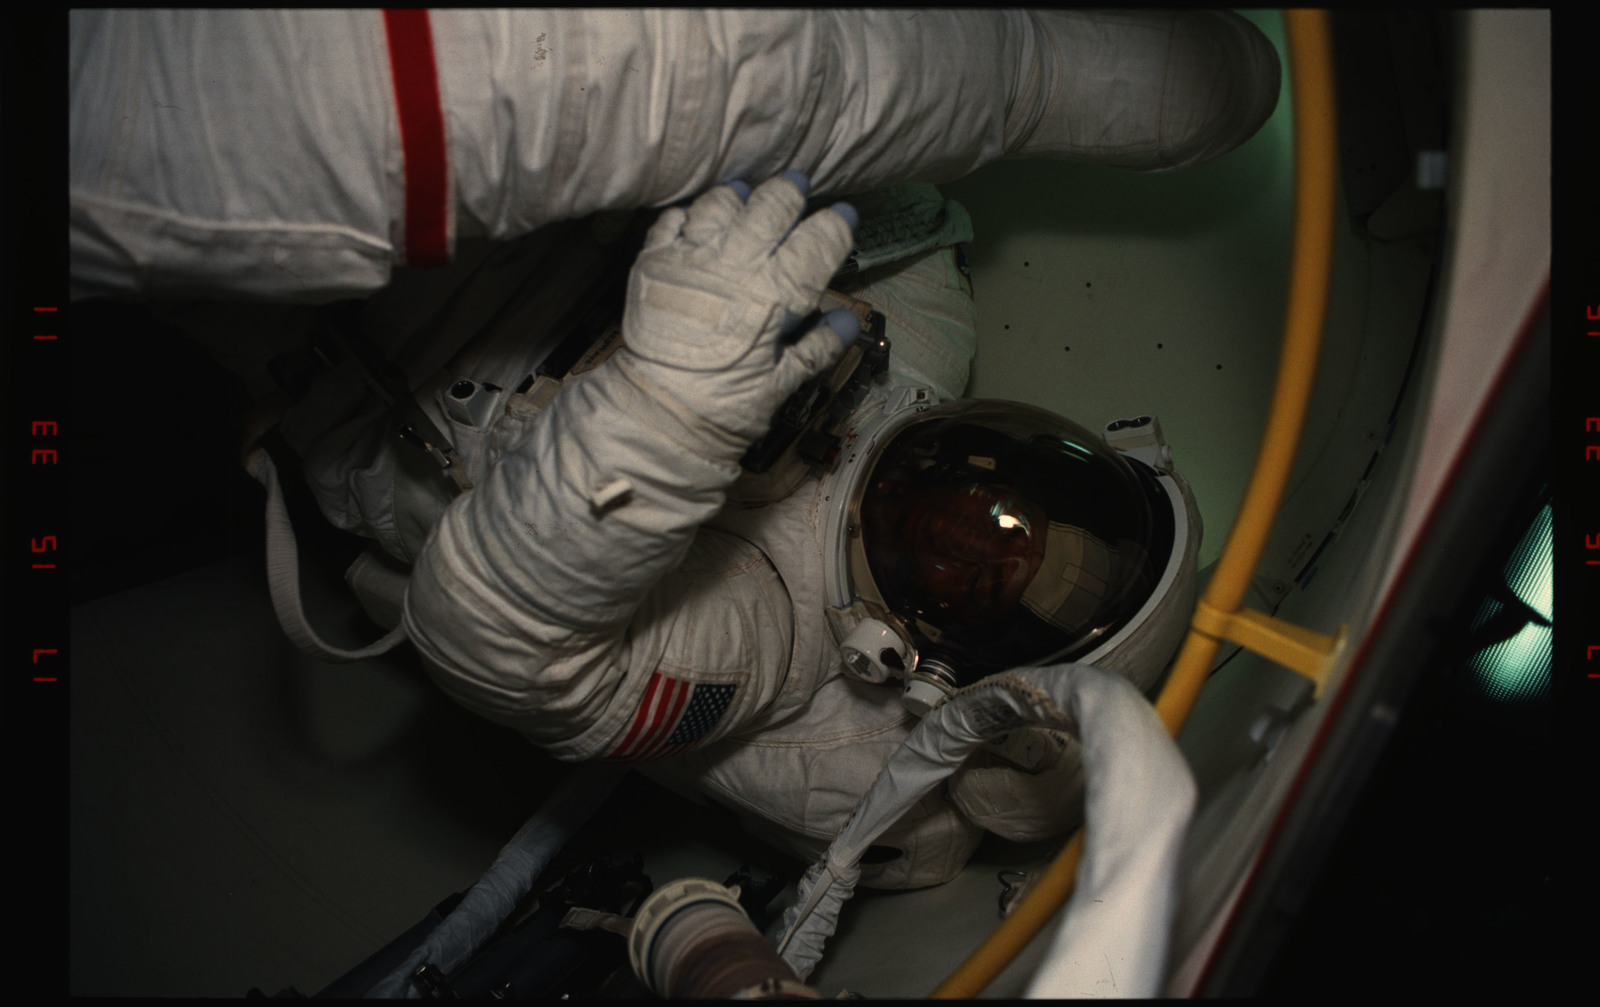 STS054-06-012 - STS-054 - EVA Crewmembers emerging from the air lock into the middeck.